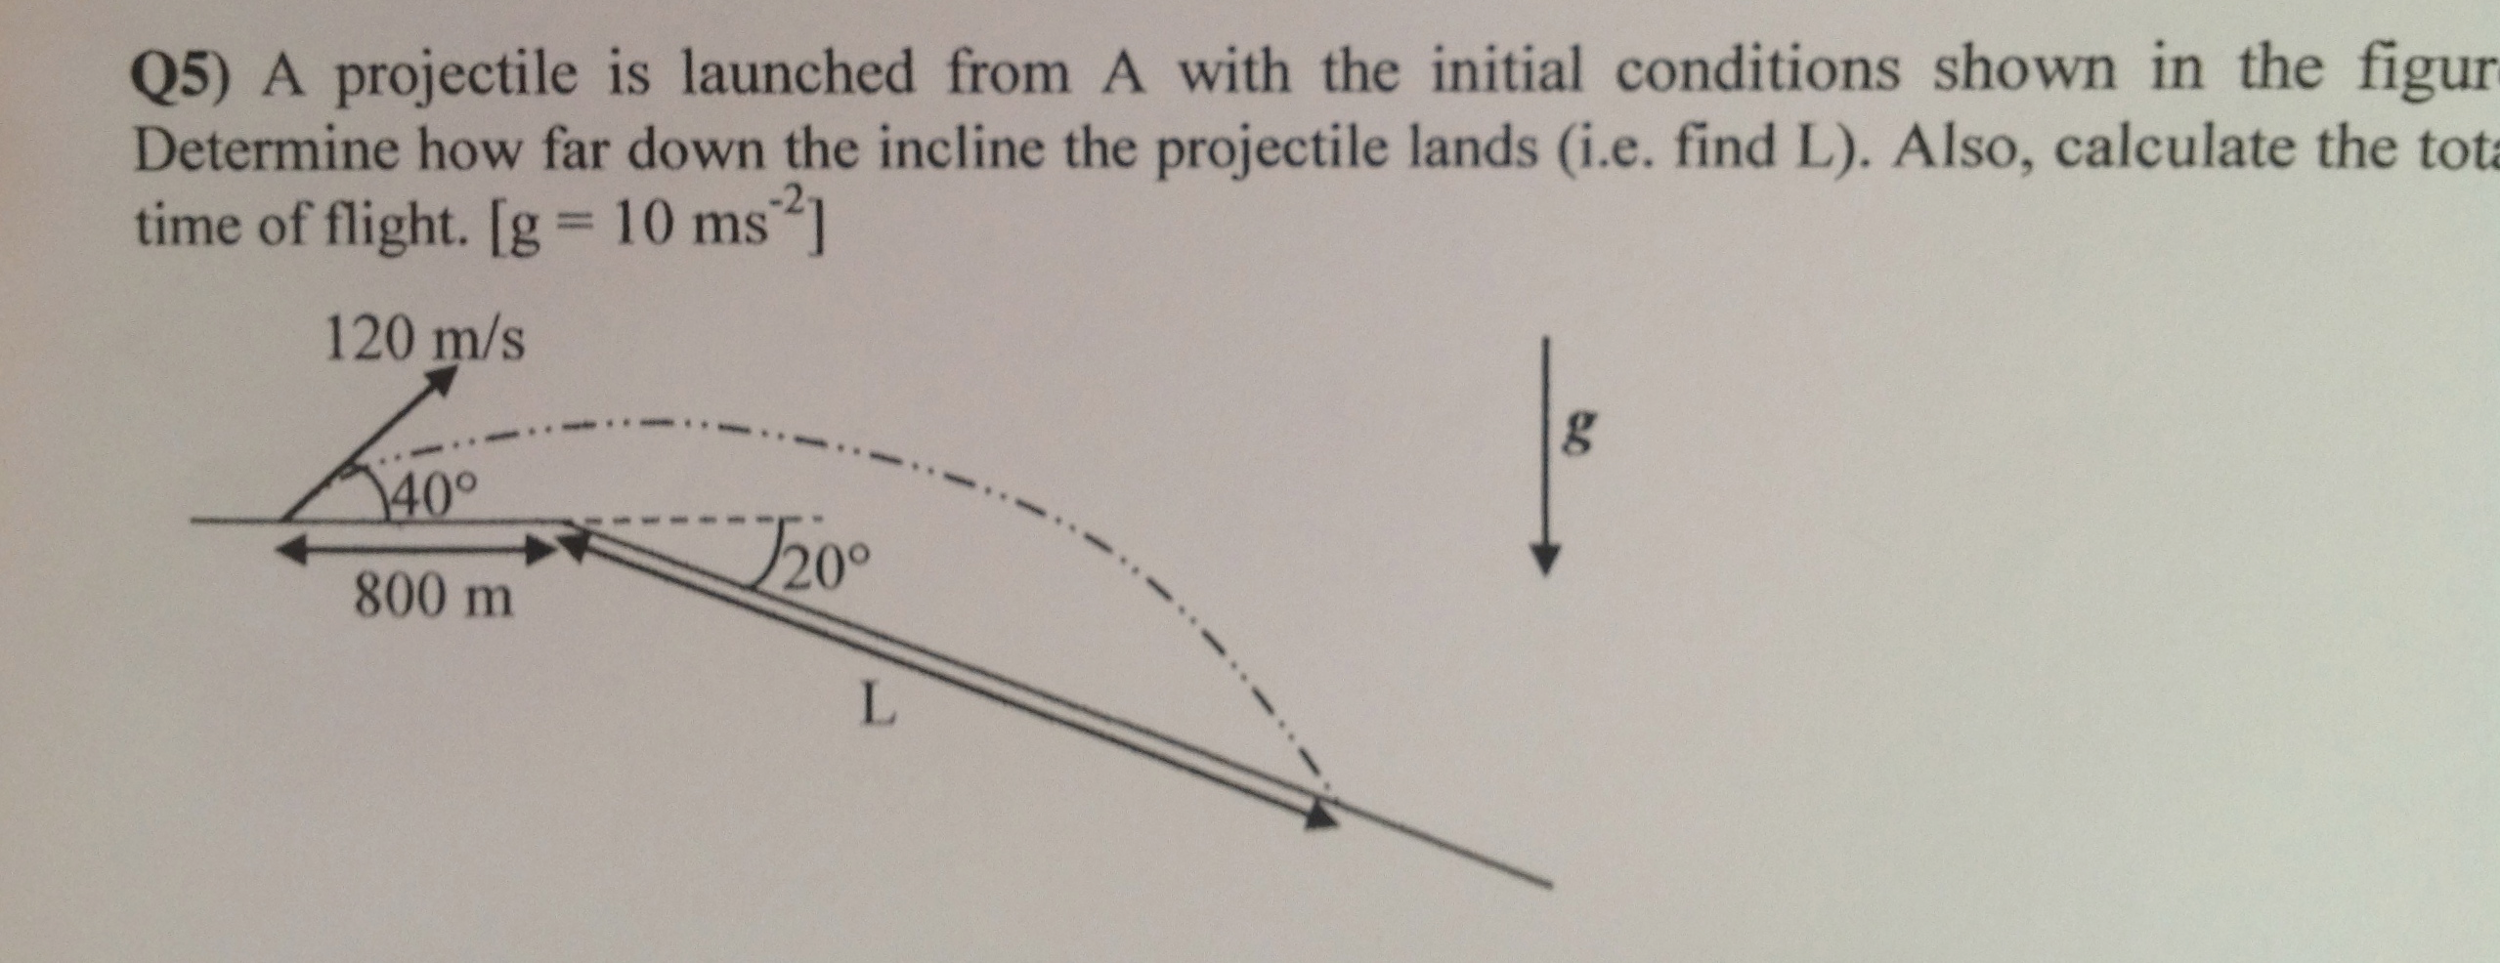 A projectile is launched from A with the initial c